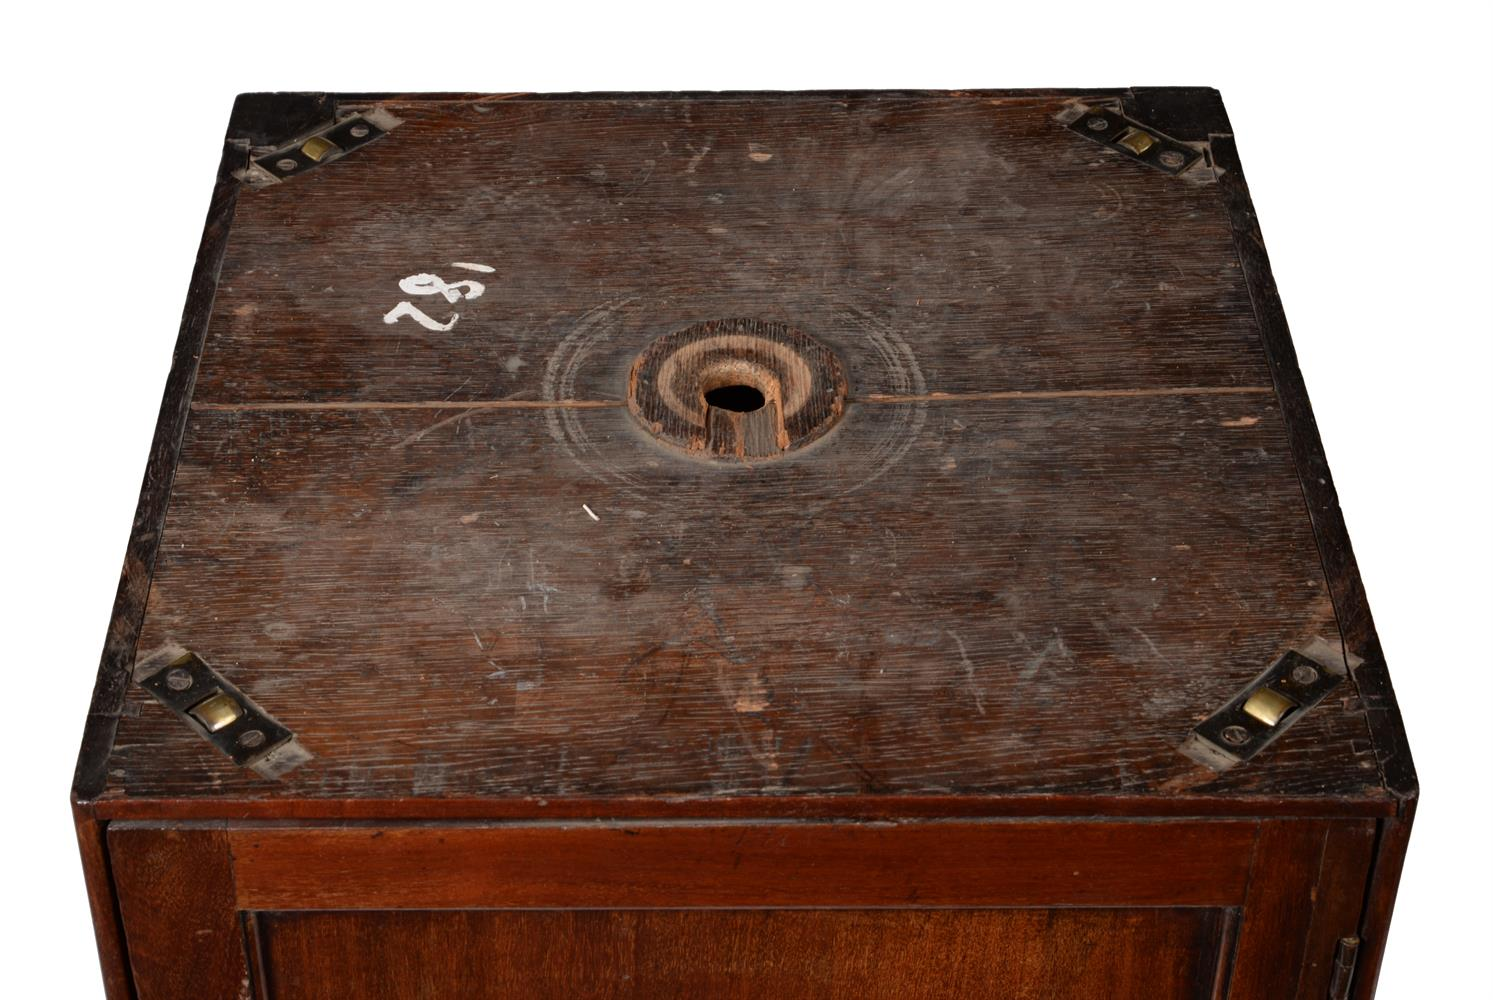 A GEORGE III MAHOGANY LIBRARY OR RENT TABLE, CIRCA 1780 - Image 6 of 7